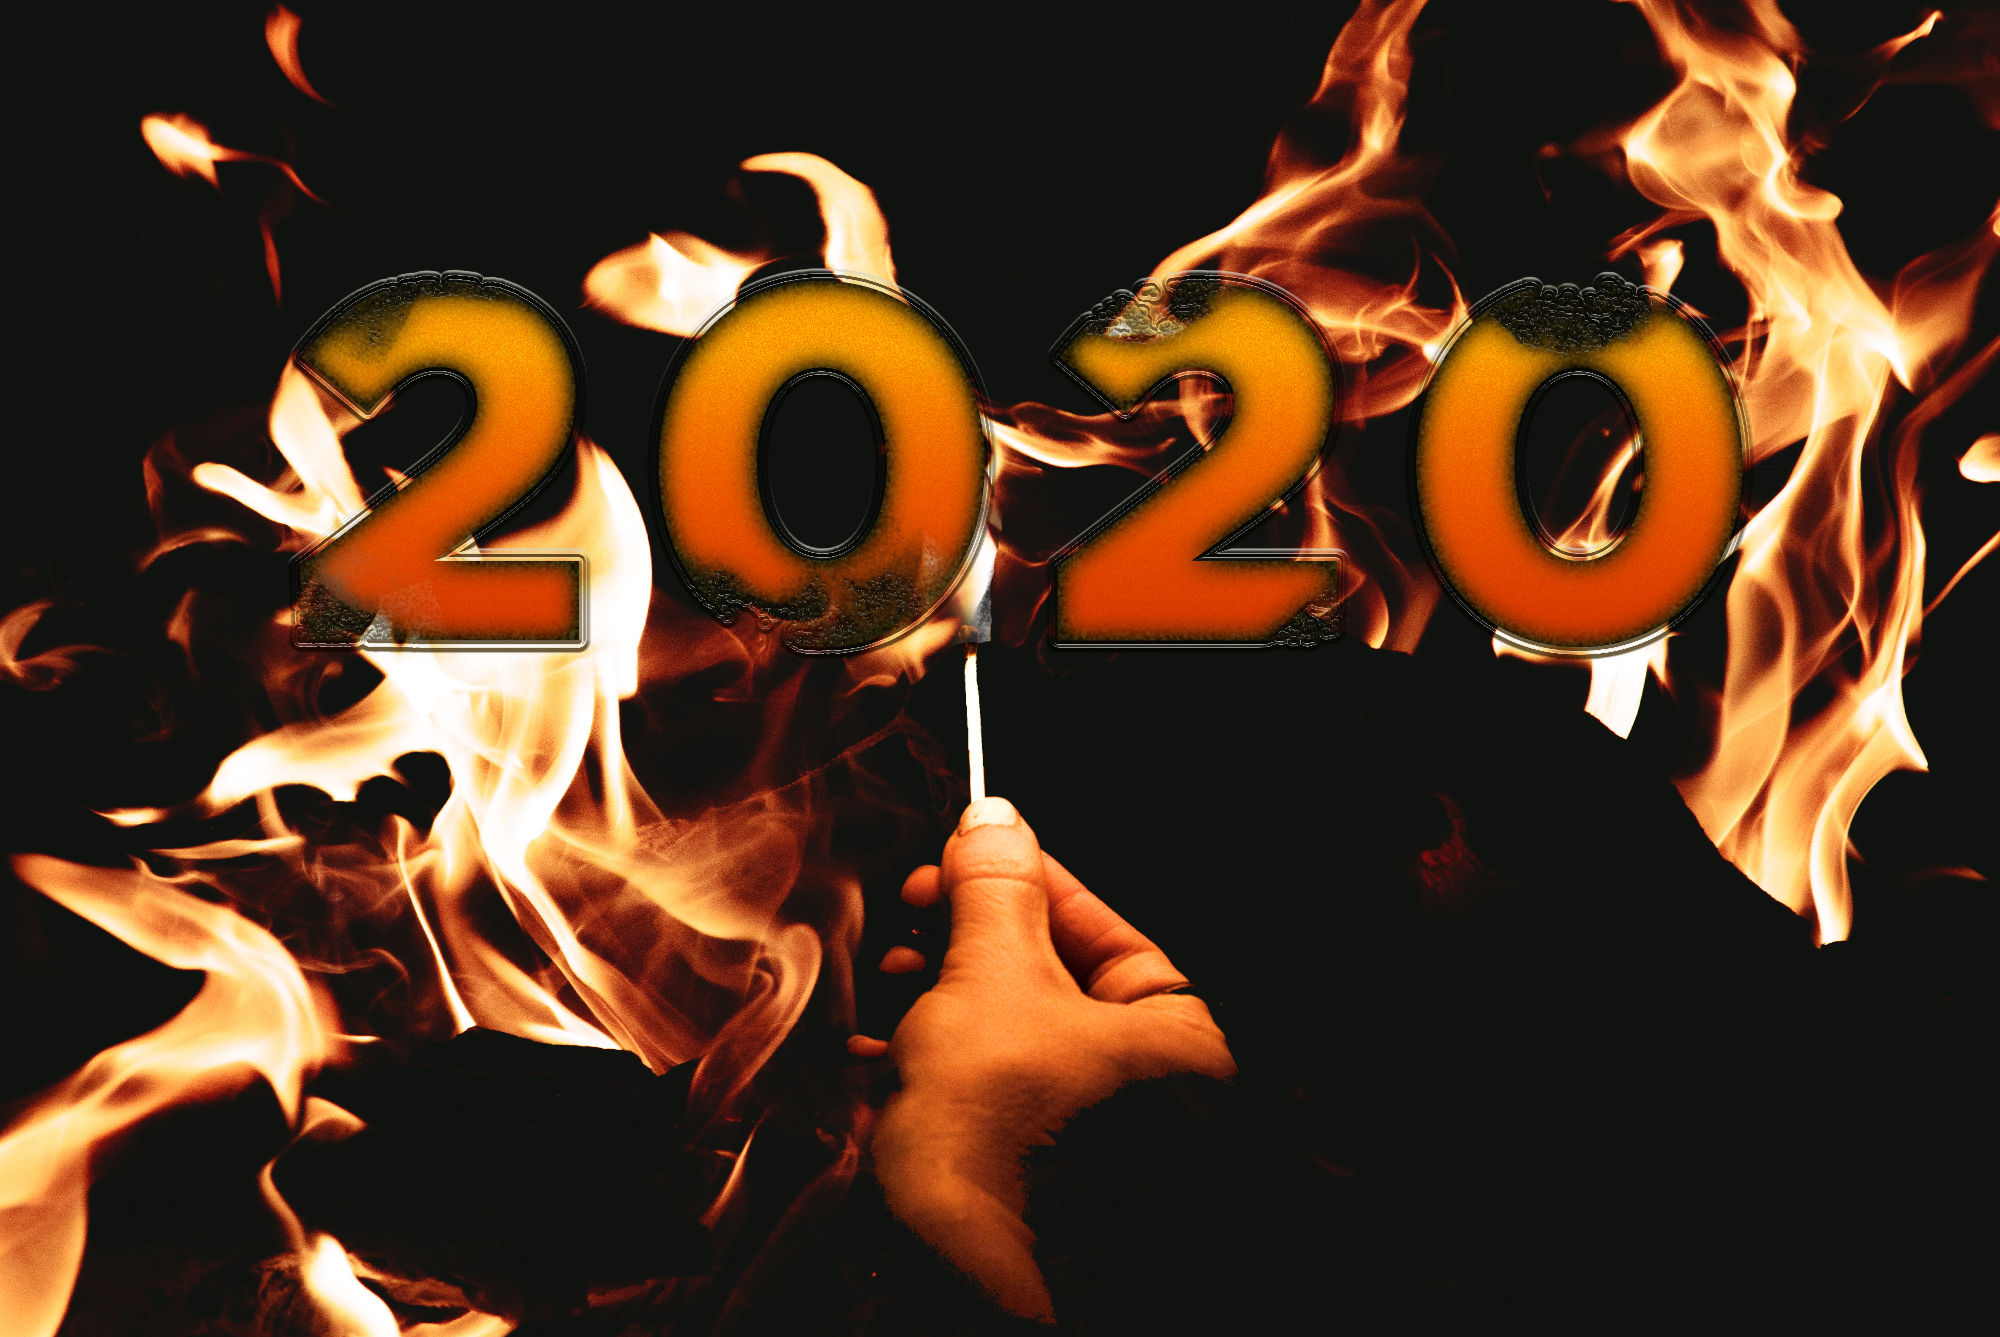 2020: Time to Accentuate the Positive